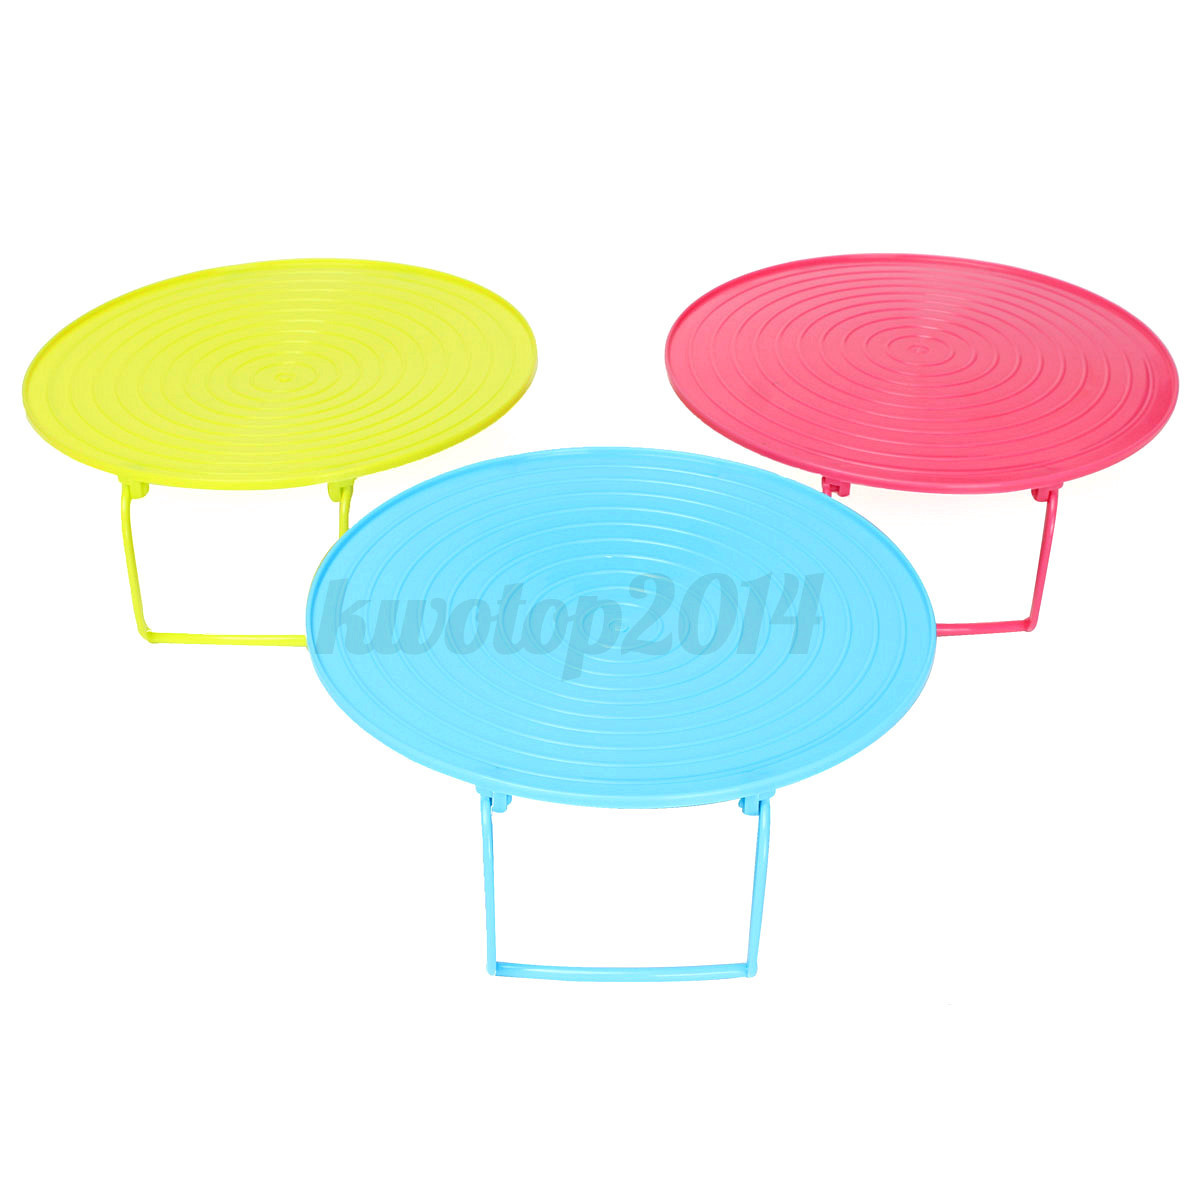 microwave oven double layer rack cover dish holder insulating plate tray kitchen ebay. Black Bedroom Furniture Sets. Home Design Ideas